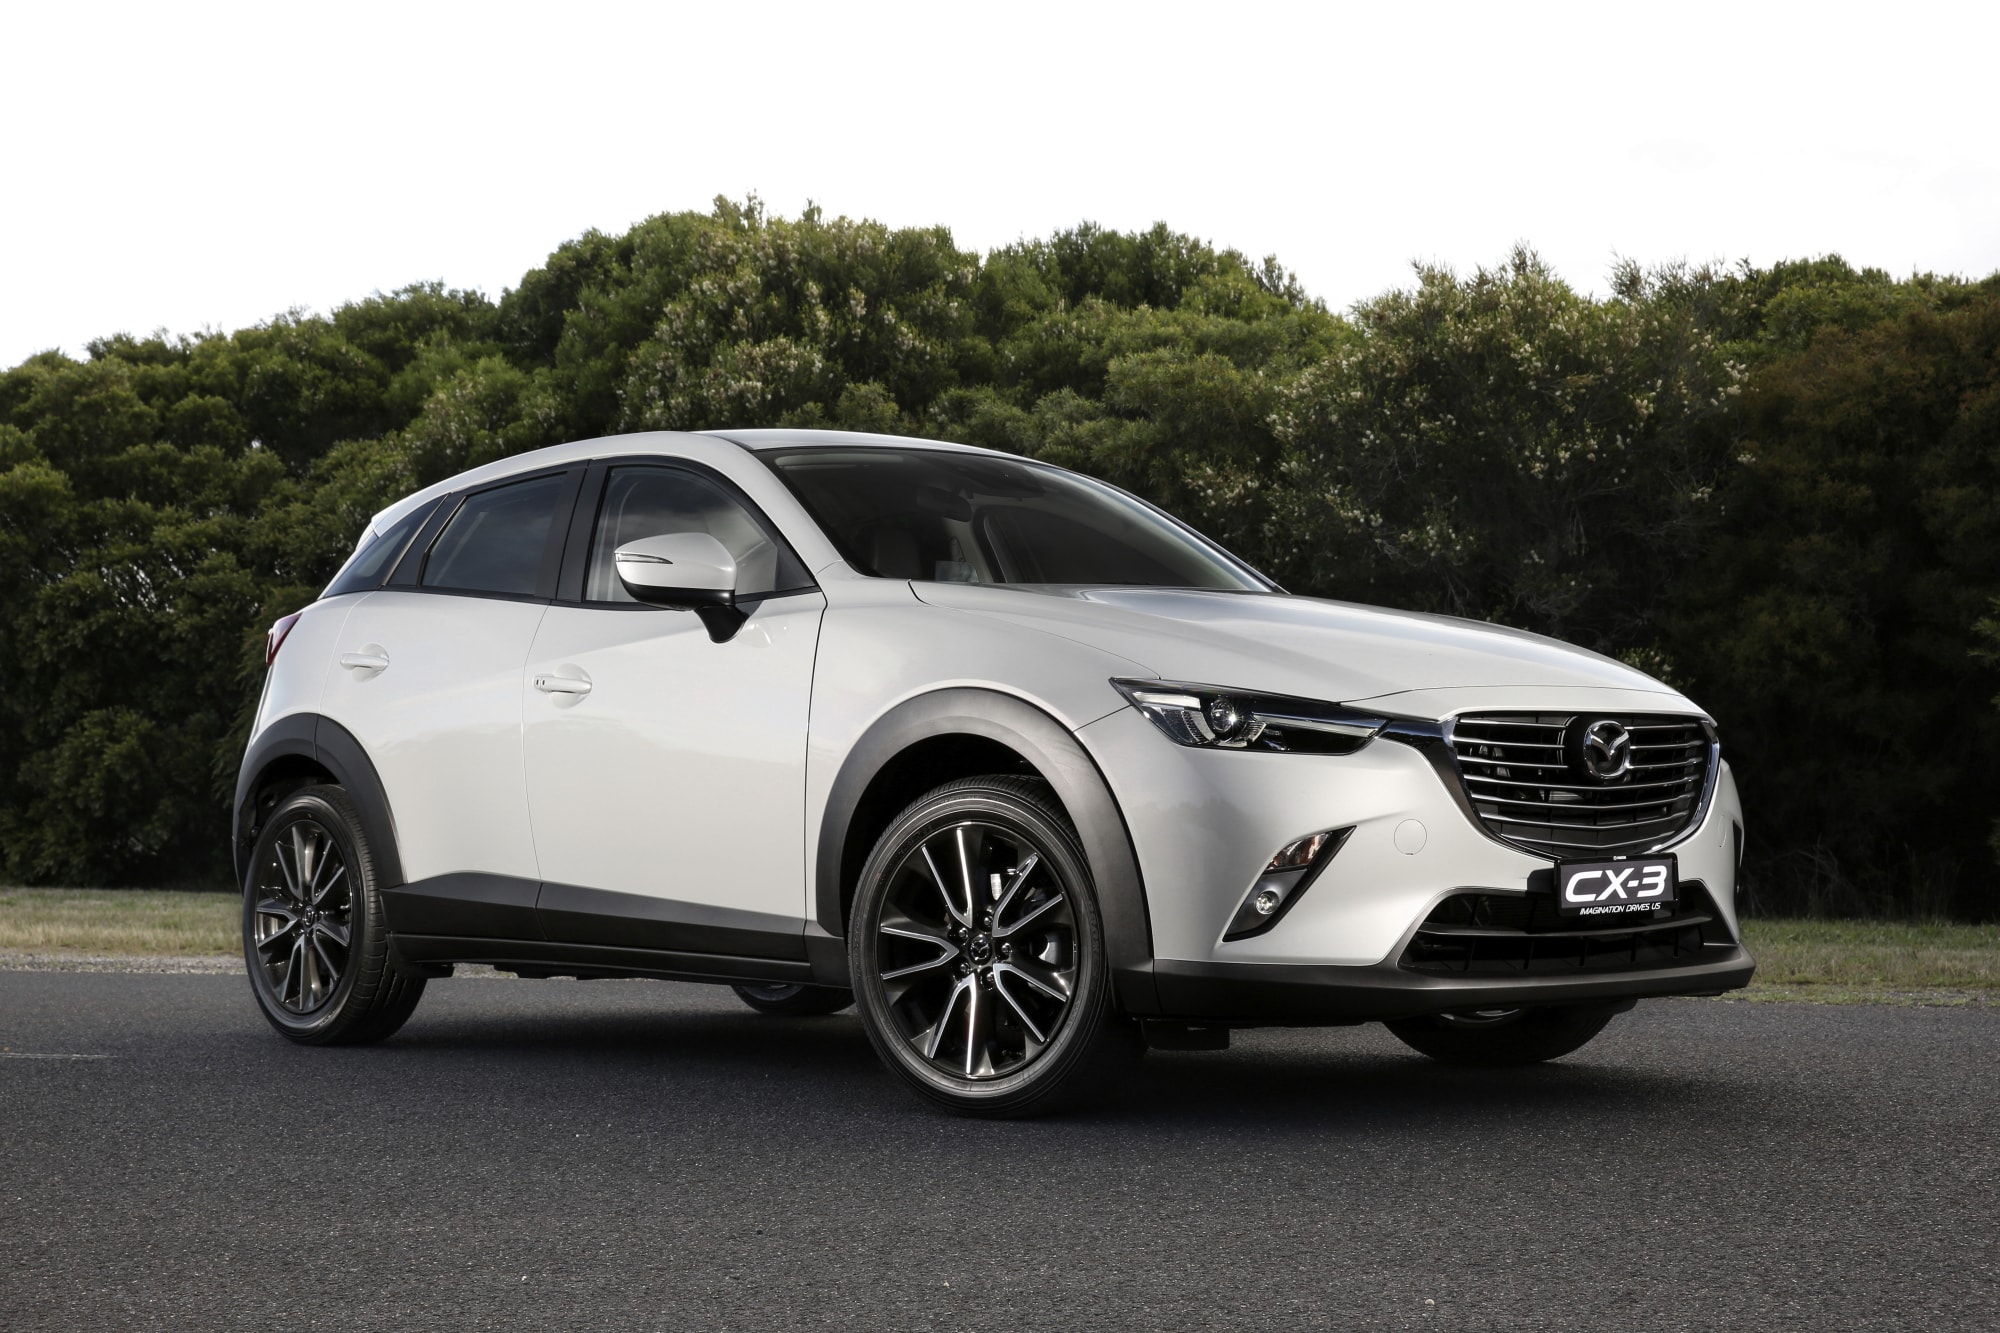 Mazda CX-3 Wallpapers